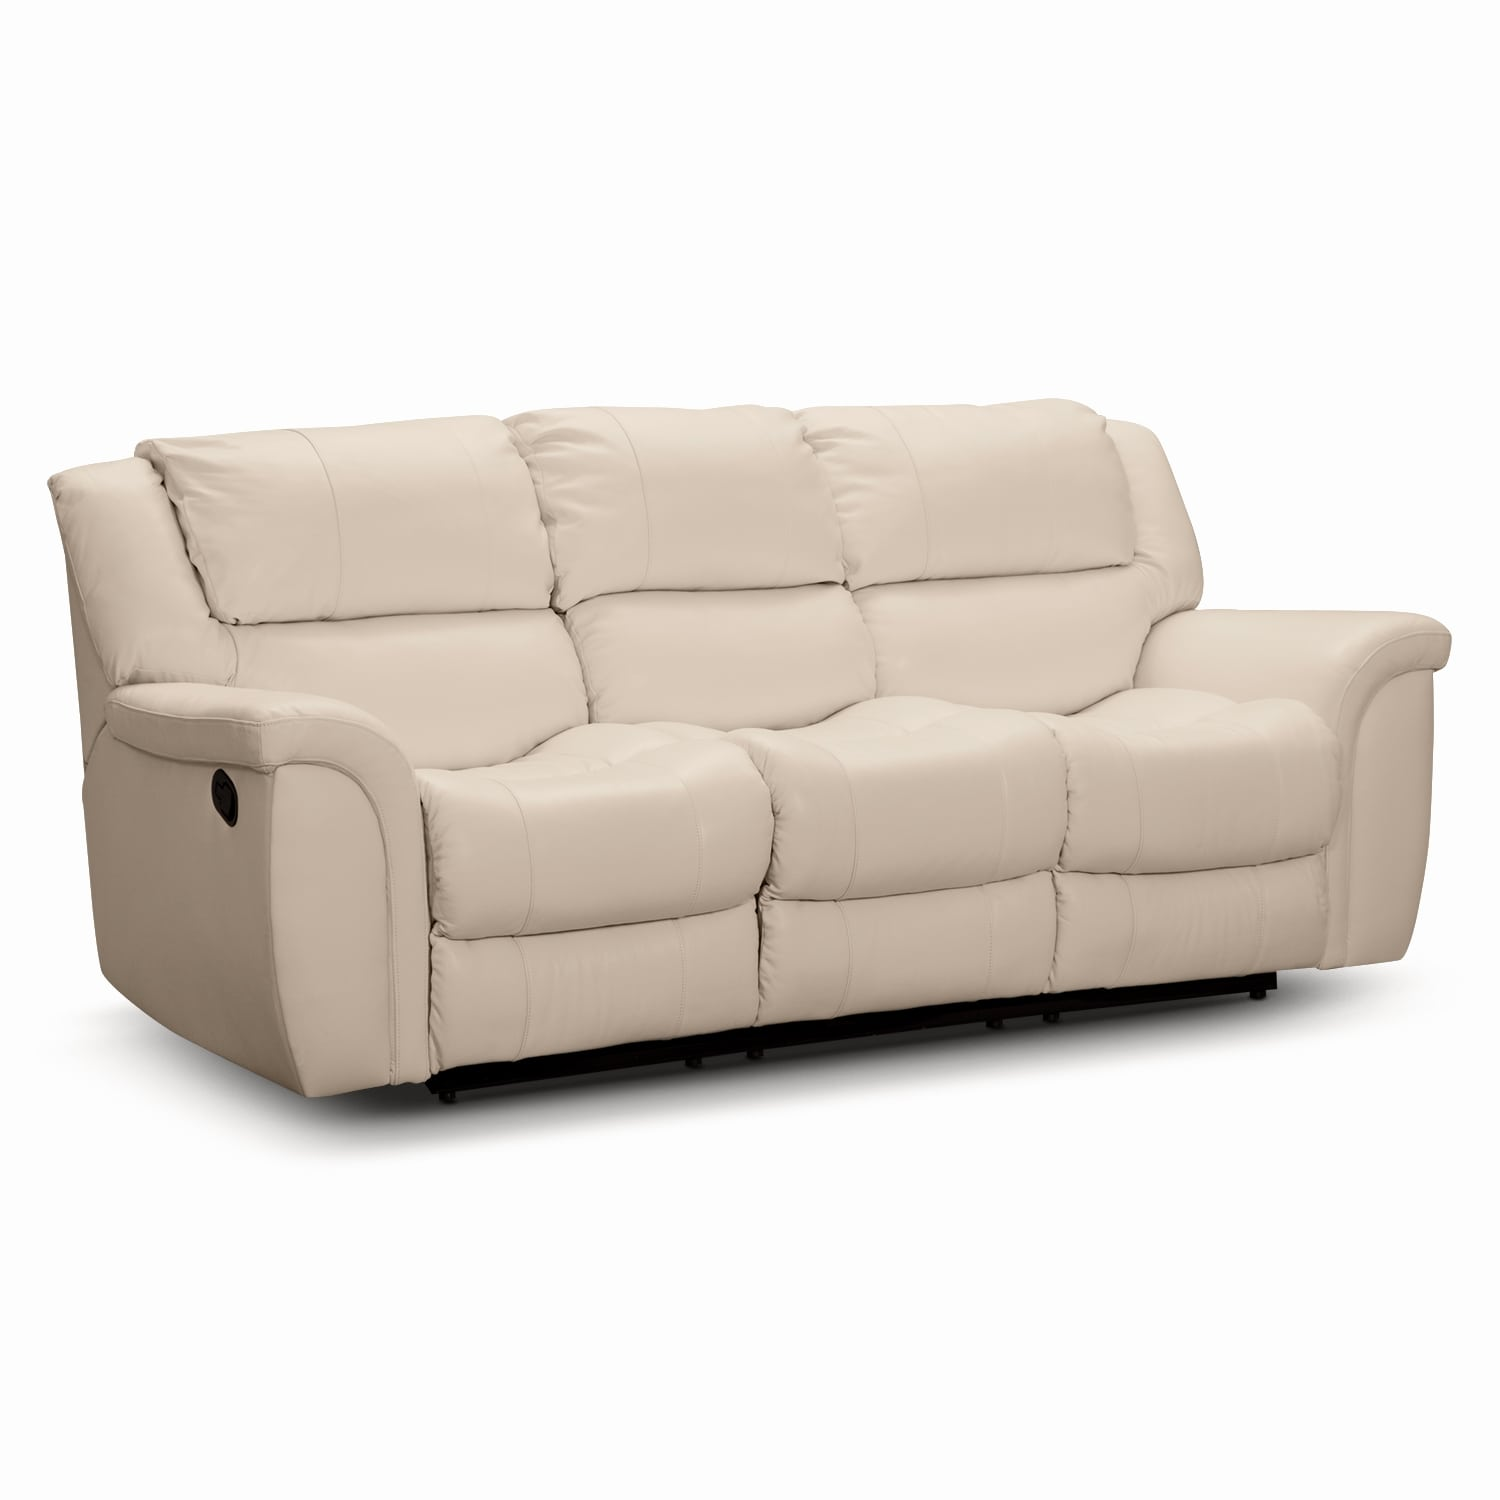 Aquarius Dual Power Reclining Sofa